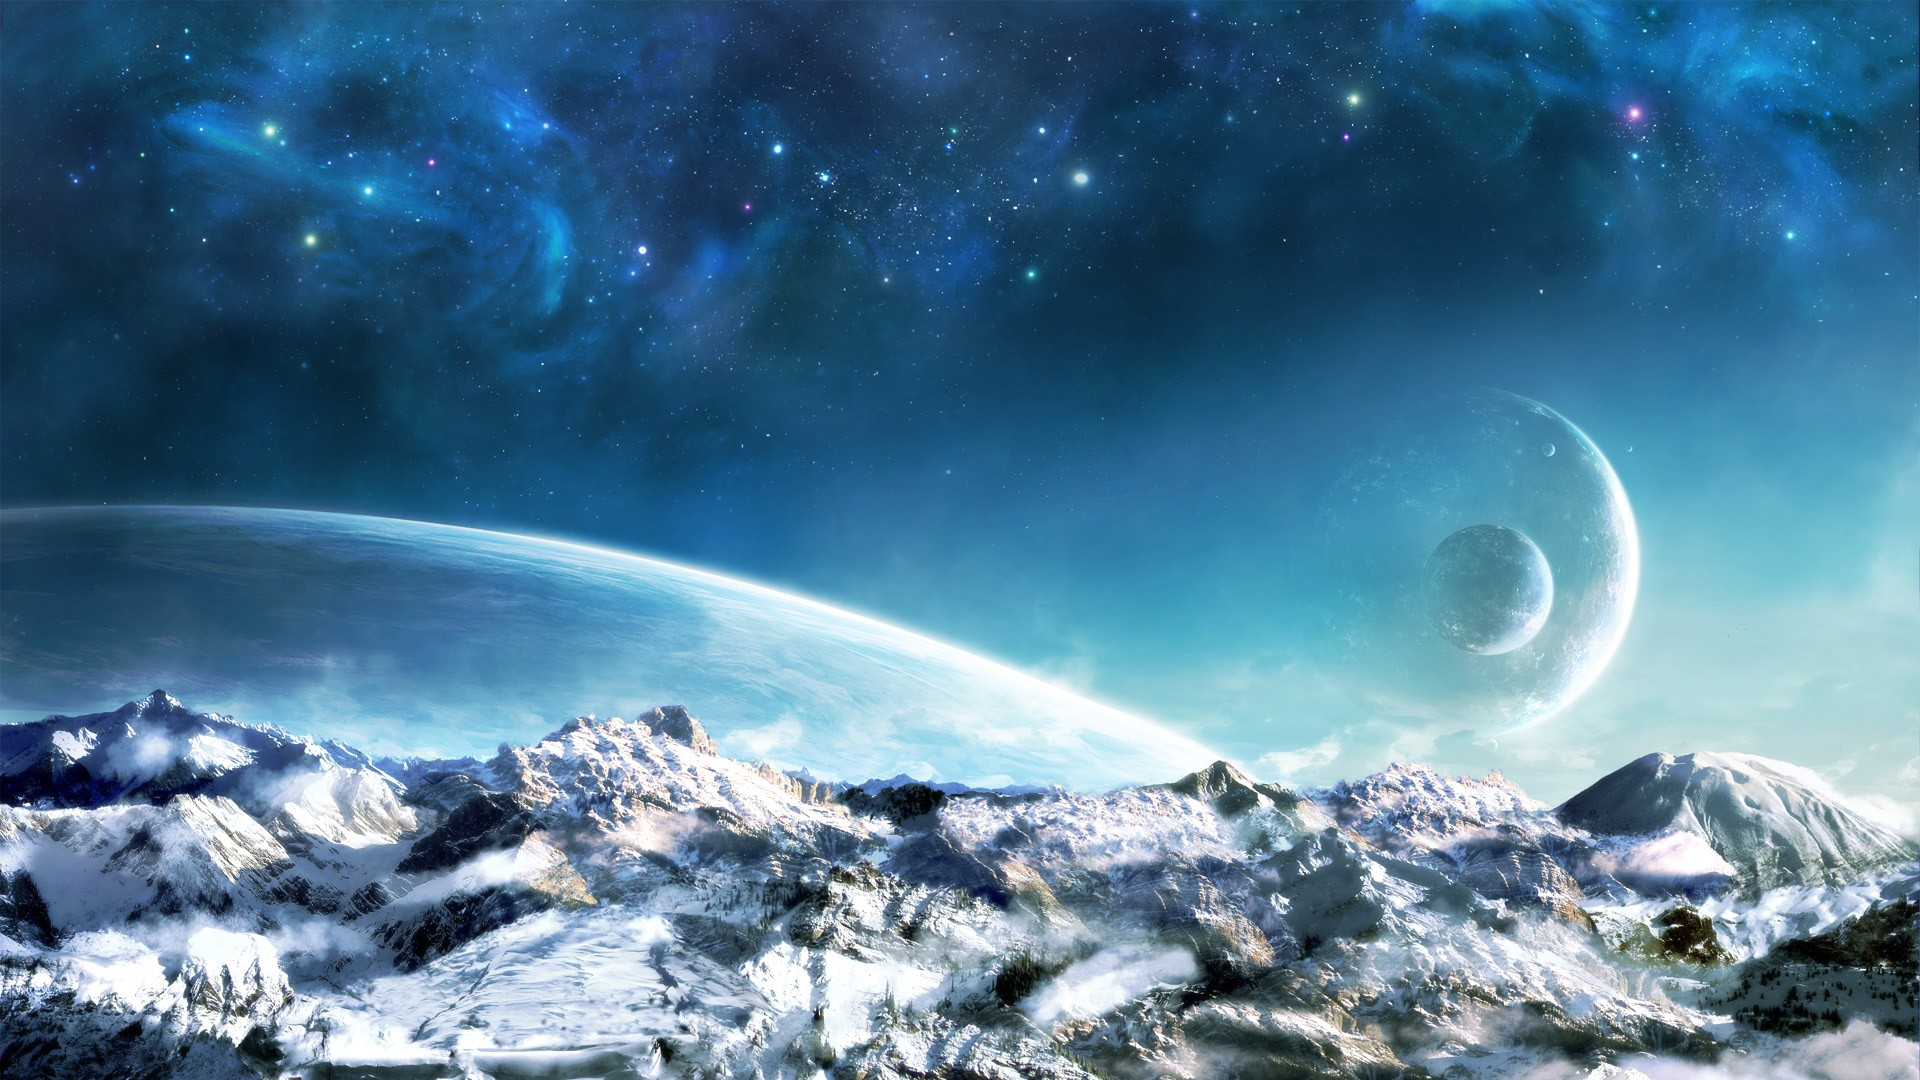 Mountains landscapes snow outer space stars planets rise for Outer space landscape